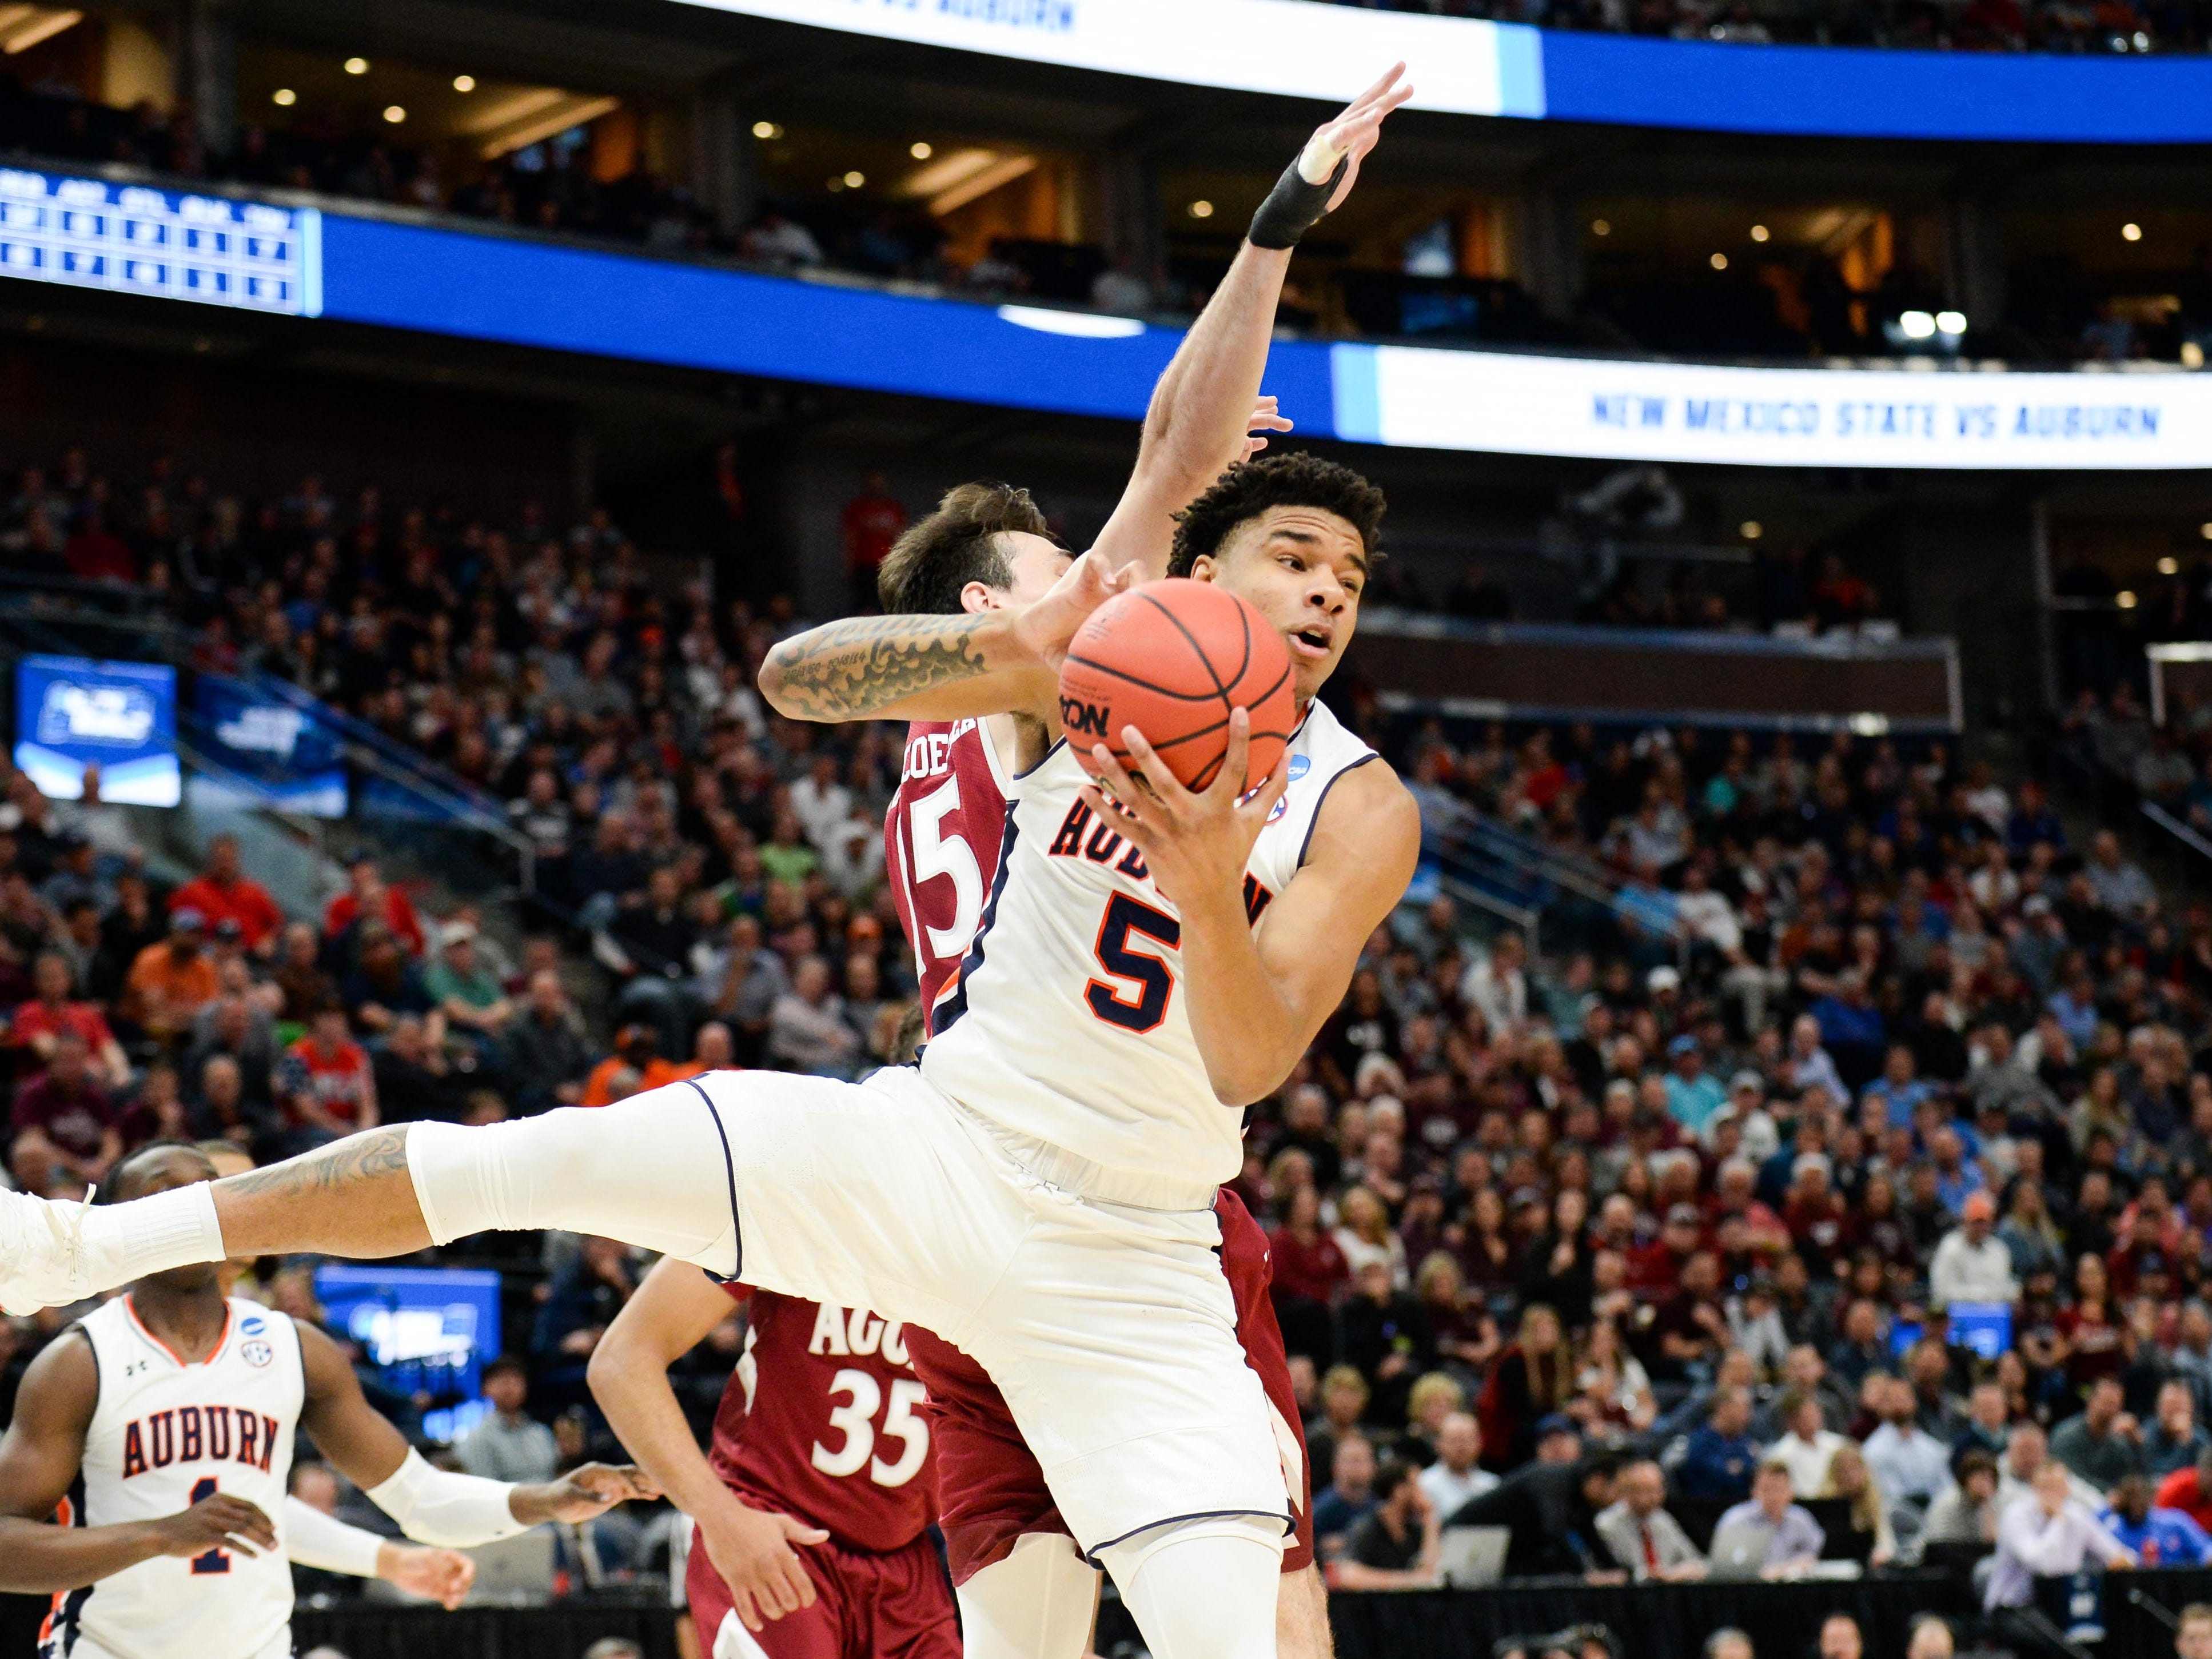 Auburn forward Chuma Okeke (5) brings down a rebound against New Mexico State forward Ivan Aurrecoechea (15) during the first round of the NCAA Tournament at Vivint Smart Home Arena on March 21, 2019, in Salt Lake City.